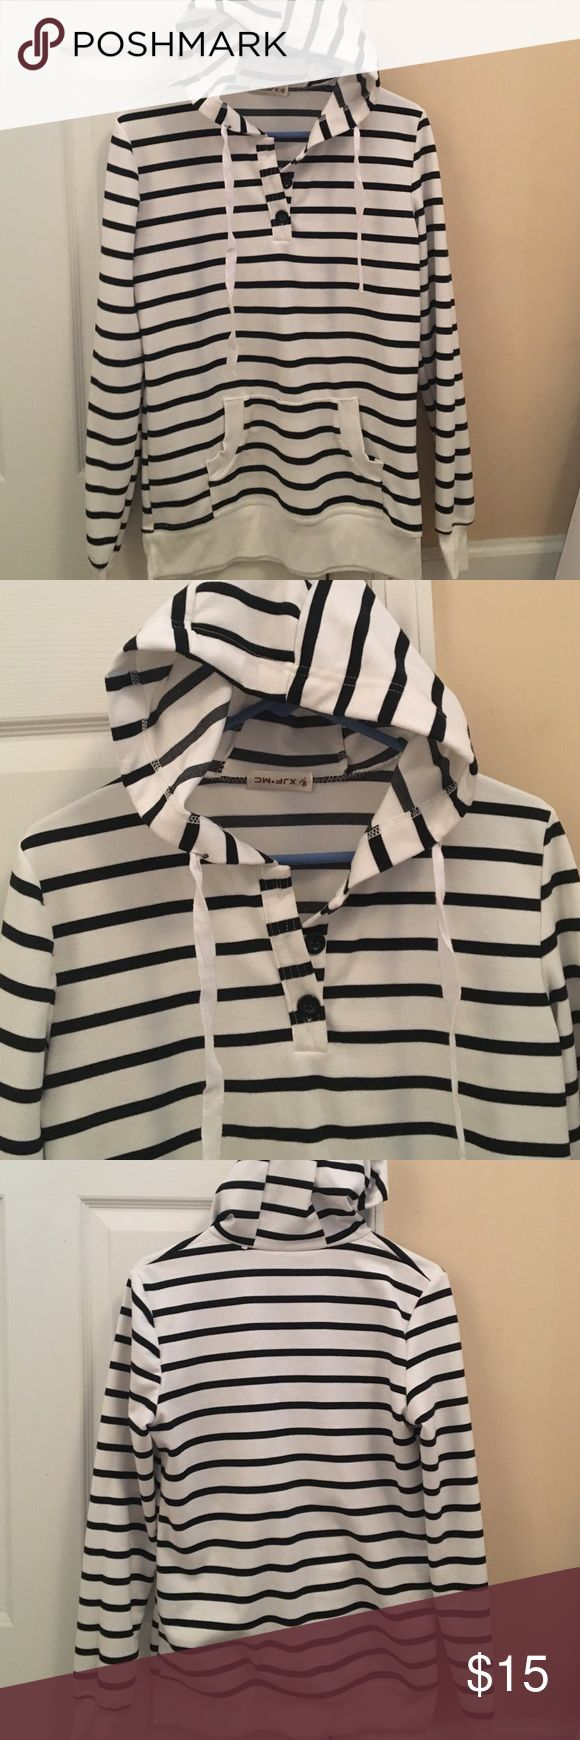 Black and white striped hoodie Black and white striped hoodie with 3 buttons at the top. Excellent condition! Size M. From an online boutique. Tops Sweatshirts & Hoodies